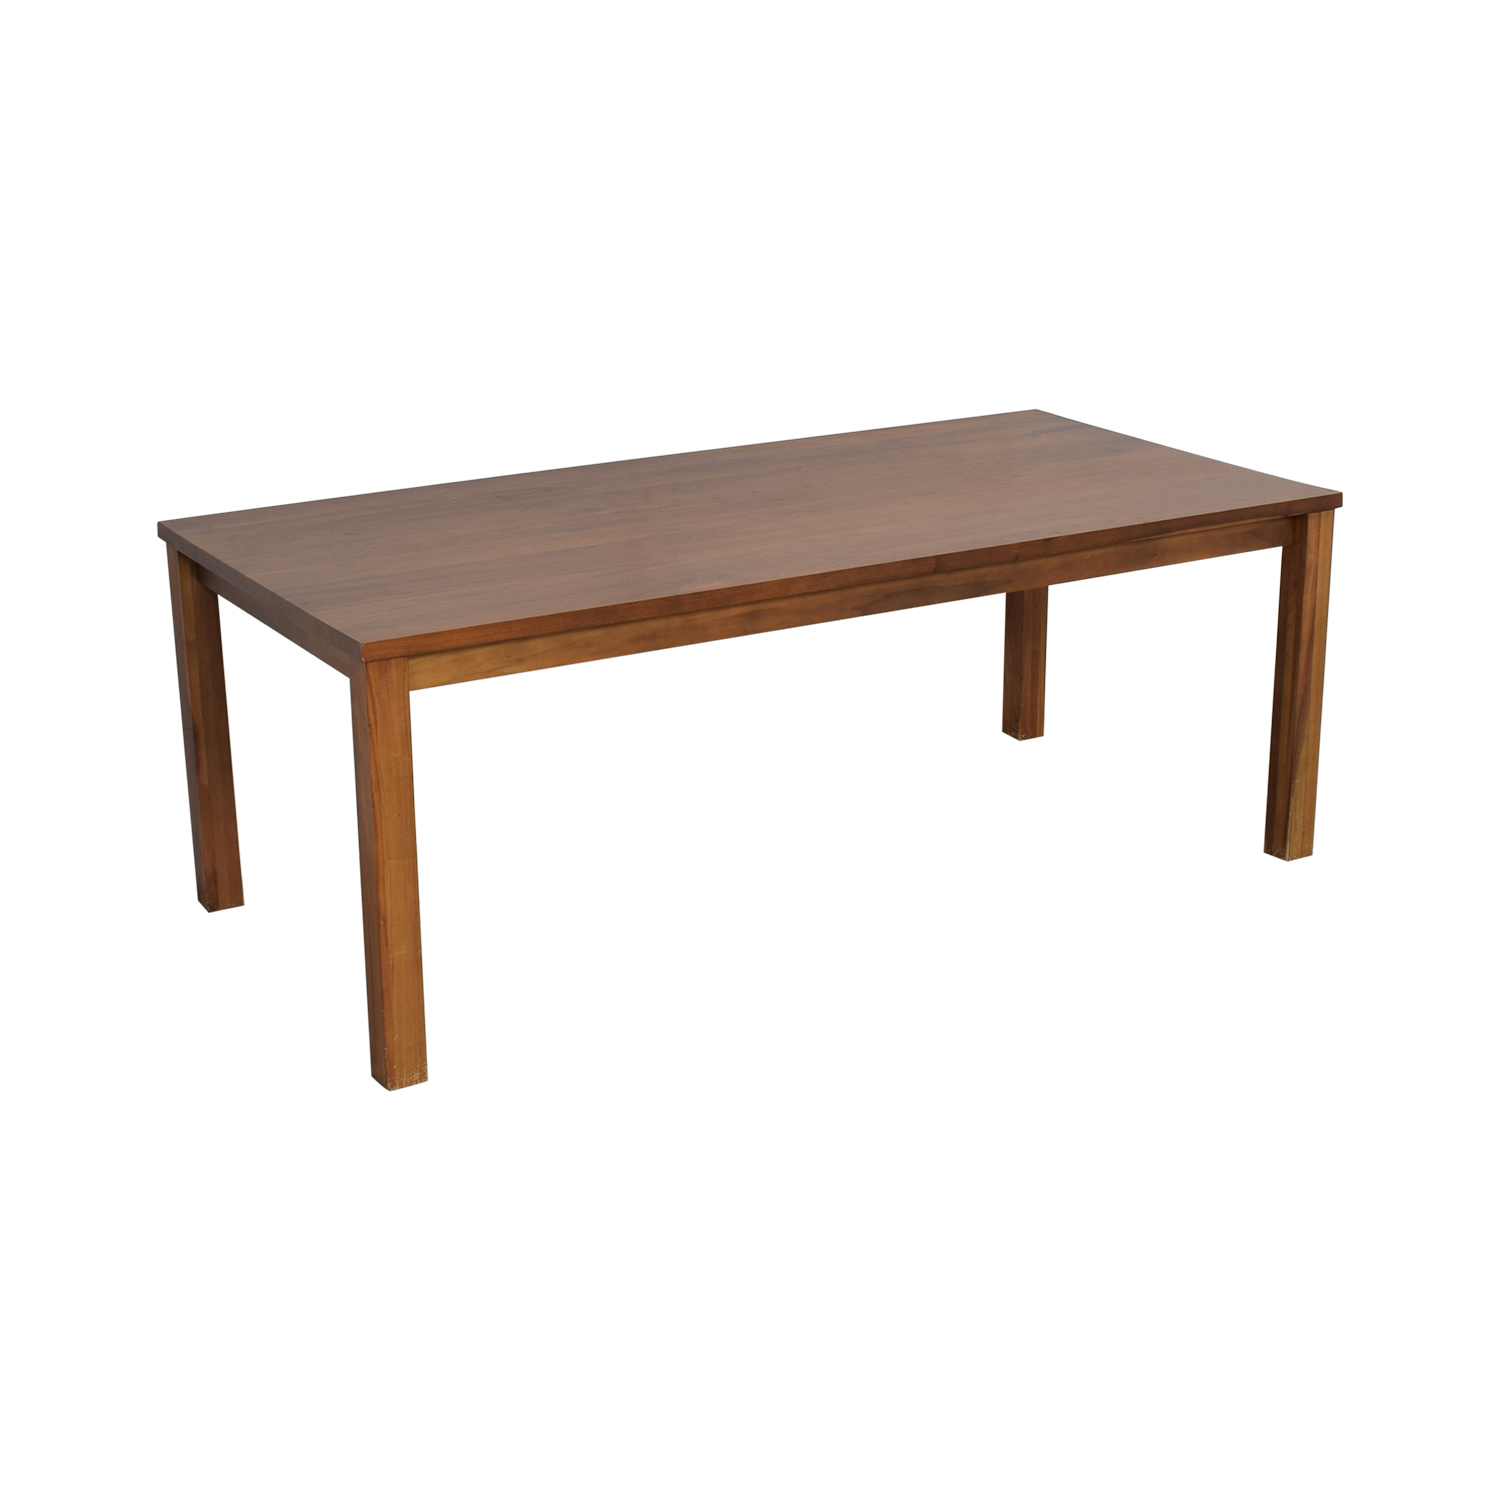 Room & Board Room & Board Andover Dining Room Table on sale